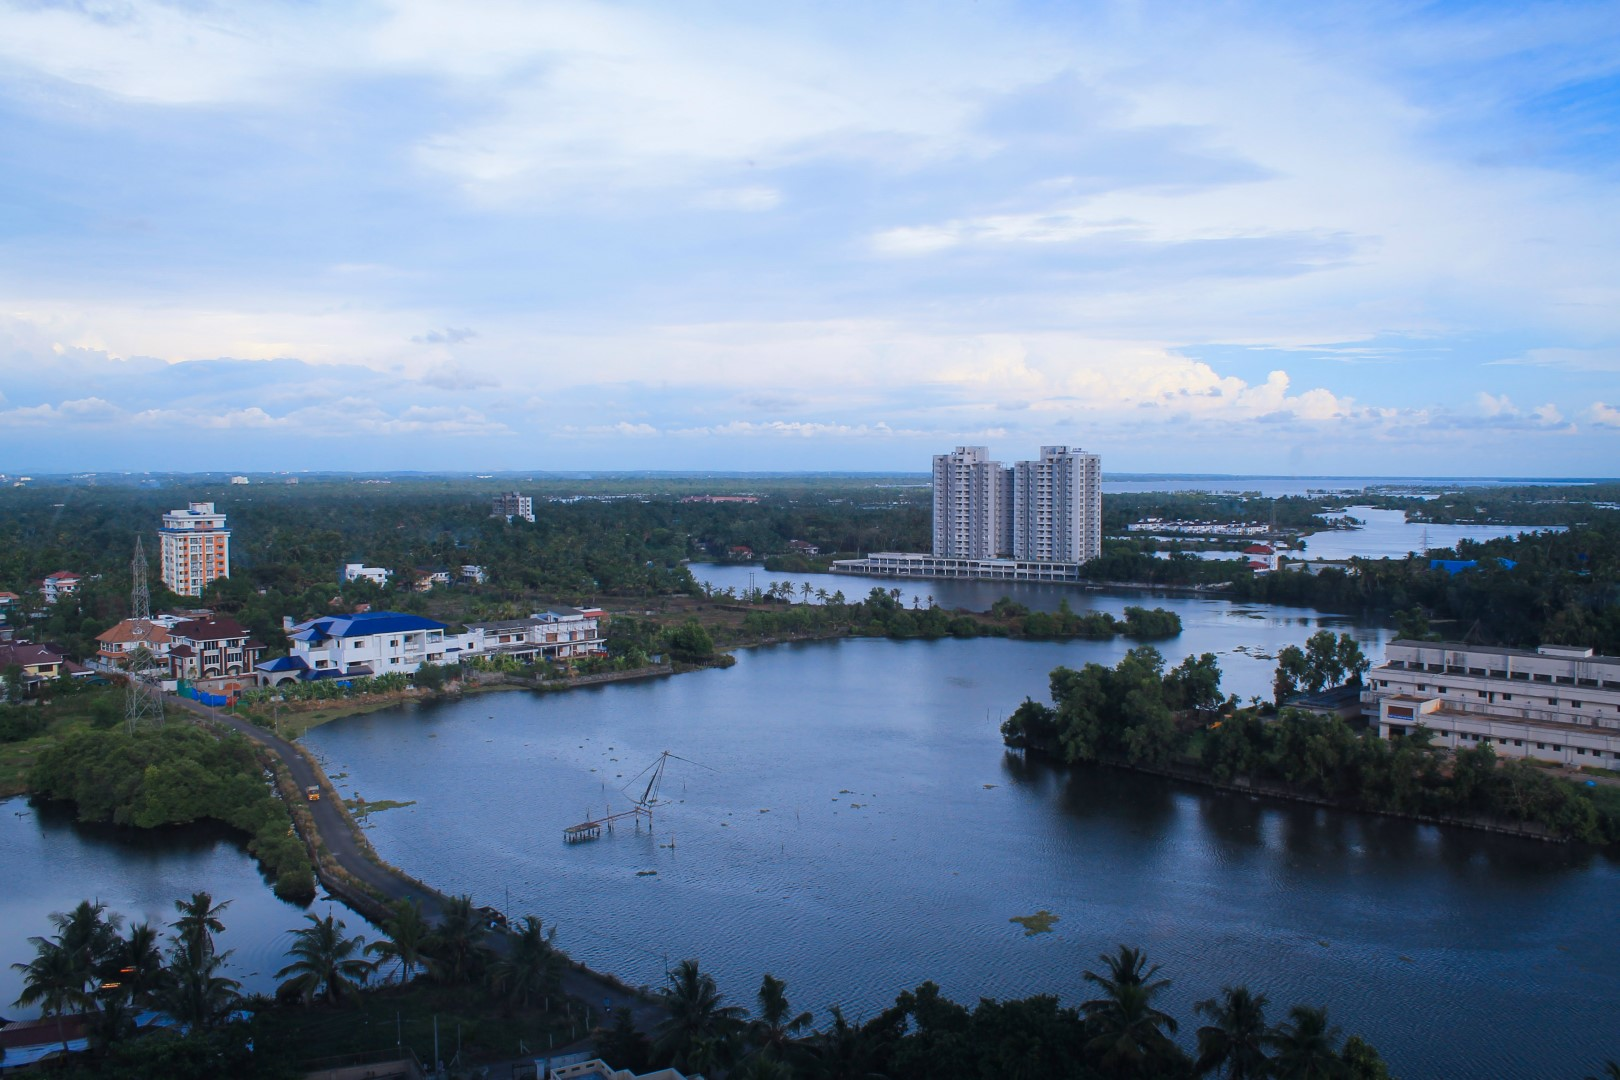 View from Crowne Plaza Kochi, India